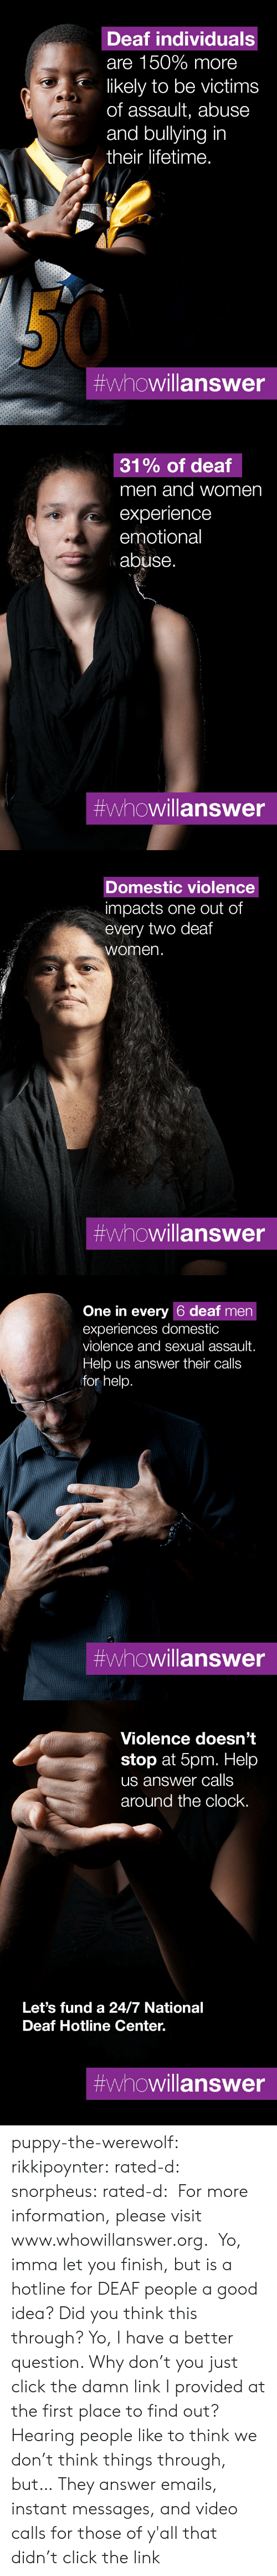 abuse: Deaf individuals  are 150% more  likely to be victims  of assault, abuse  and bullying in  their lifetime.  #whowillanswer   31% of deaf  men and women  experience  emotional  abuse.  #whowillanswer   Domestic violence  impacts one out of  every two deaf  women.  #whowillanswer   One in every 6 deaf men  experiences domestic  violence and sexual assault.  Help us answer their calls  for help.  #whowillanswer   Violence doesn't  stop at 5pm. Help  us answer calls  around the clock.  Let's fund a 24/7 National  Deaf Hotline Center.  puppy-the-werewolf: rikkipoynter:  rated-d:  snorpheus:  rated-d:   For more information, please visit www.whowillanswer.org.   Yo, imma let you finish, but is a hotline for DEAF people a good idea? Did you think this through?  Yo, I have a better question. Why don't you just click the damn link I provided at the first place to find out?     Hearing people like to think we don't think things through, but…   They answer emails, instant messages, and video calls for those of y'all that didn't click the link